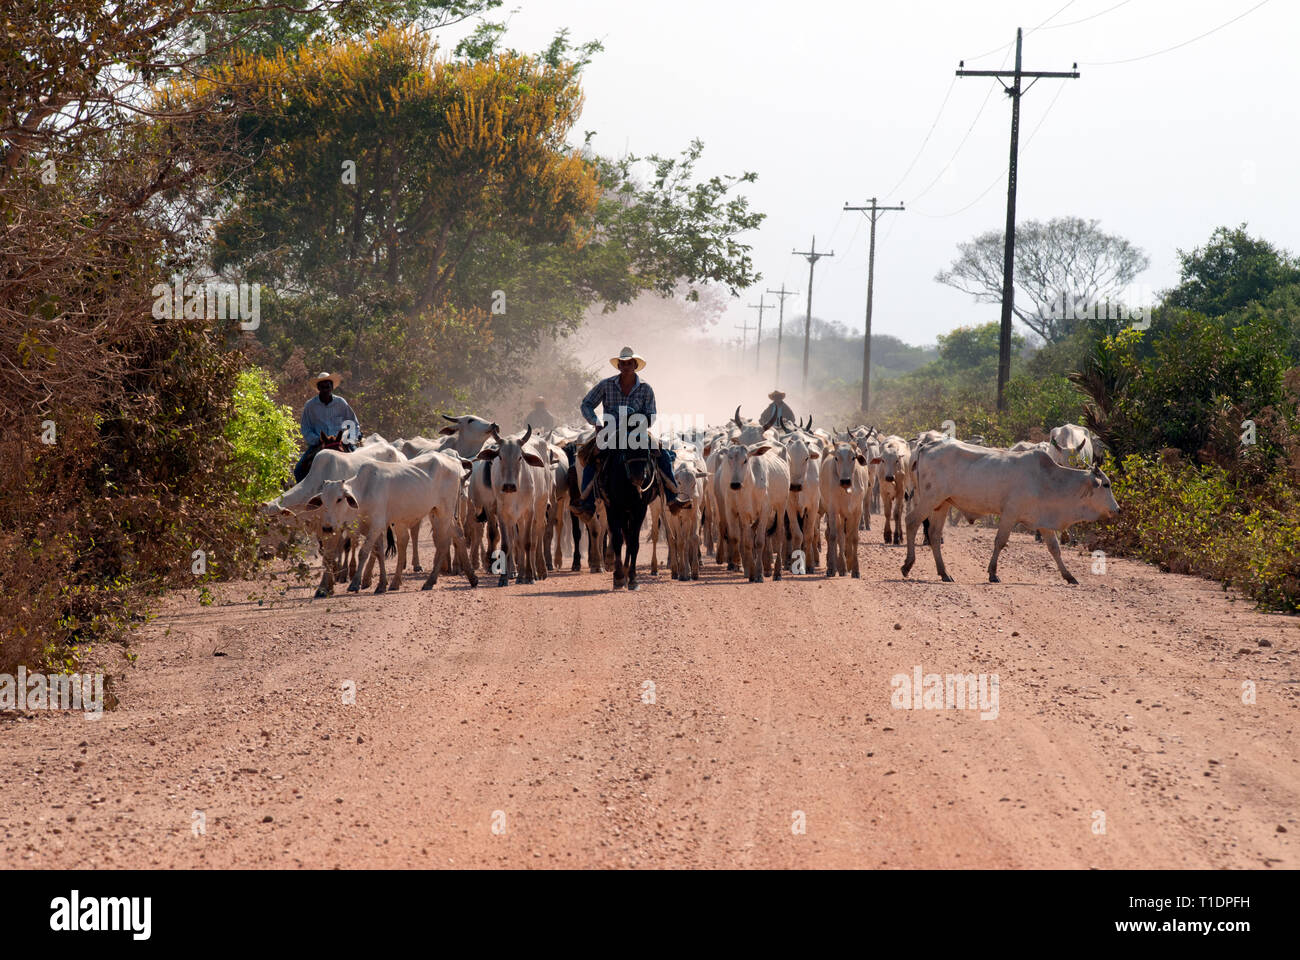 Brazilian cowboys (Gauchos or Vaqueiros) herding cattle down a dirt road in the Pantanal of southern Brazil - Stock Image